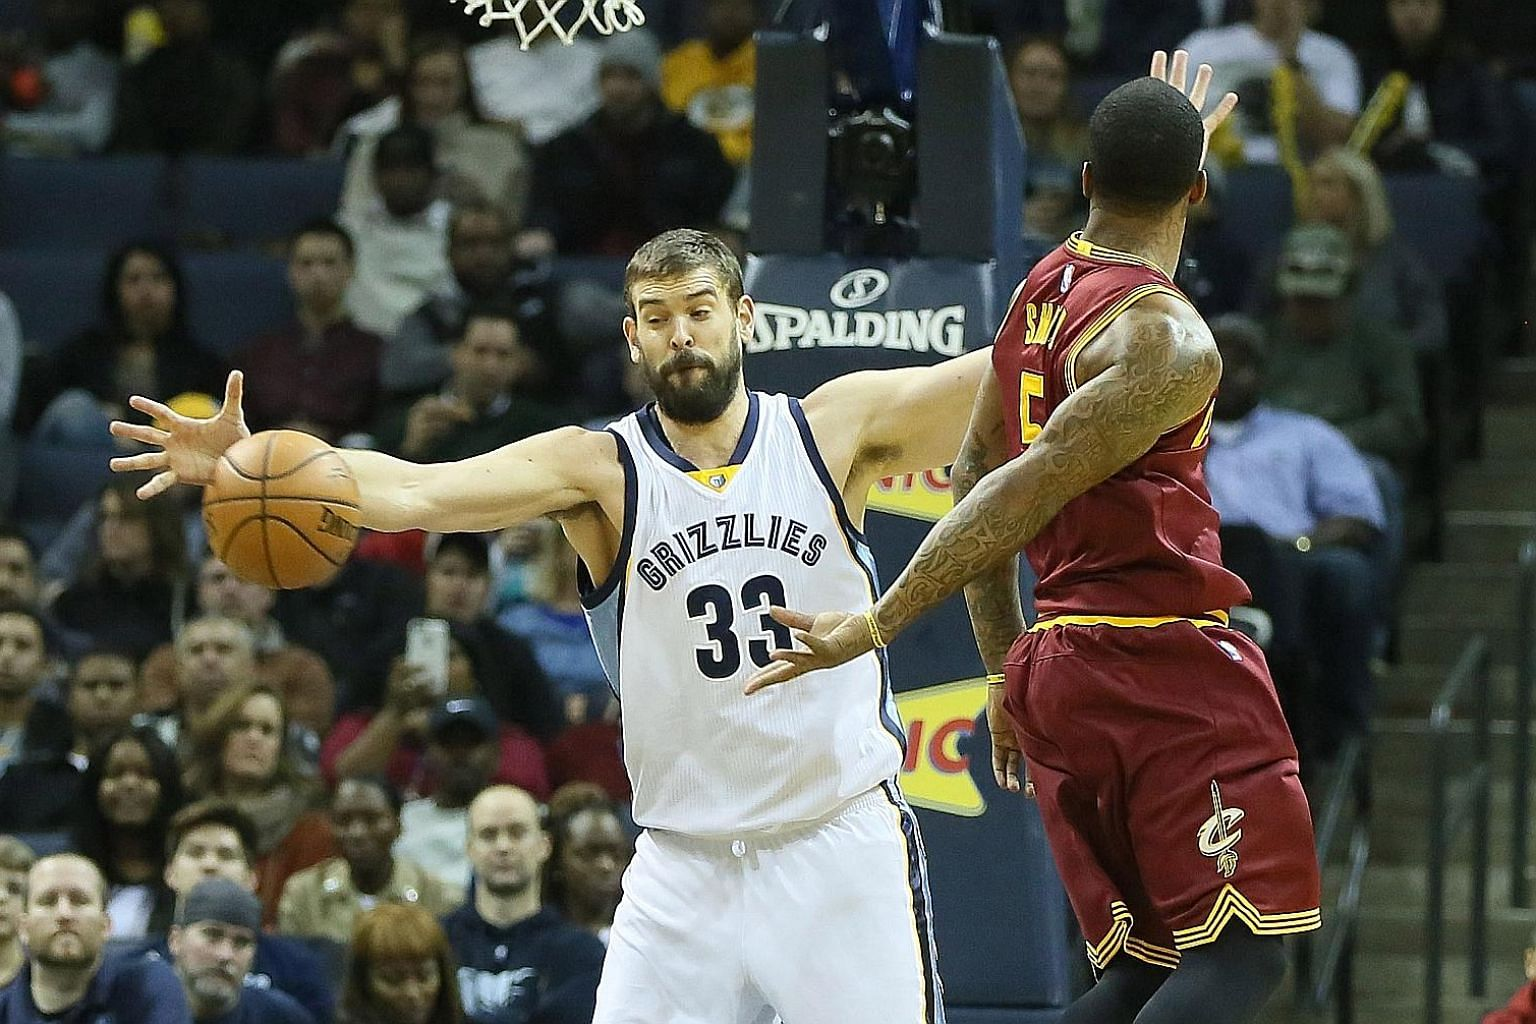 Memphis Grizzlies centre Marc Gasol stealing a pass by Cleveland Cavaliers guard J.R. Smith in the first quarter at FedExForum in Tennessee. The Spanish international posted a double-double with 17 points and 11 rebounds, as hosts Memphis won 93-85.